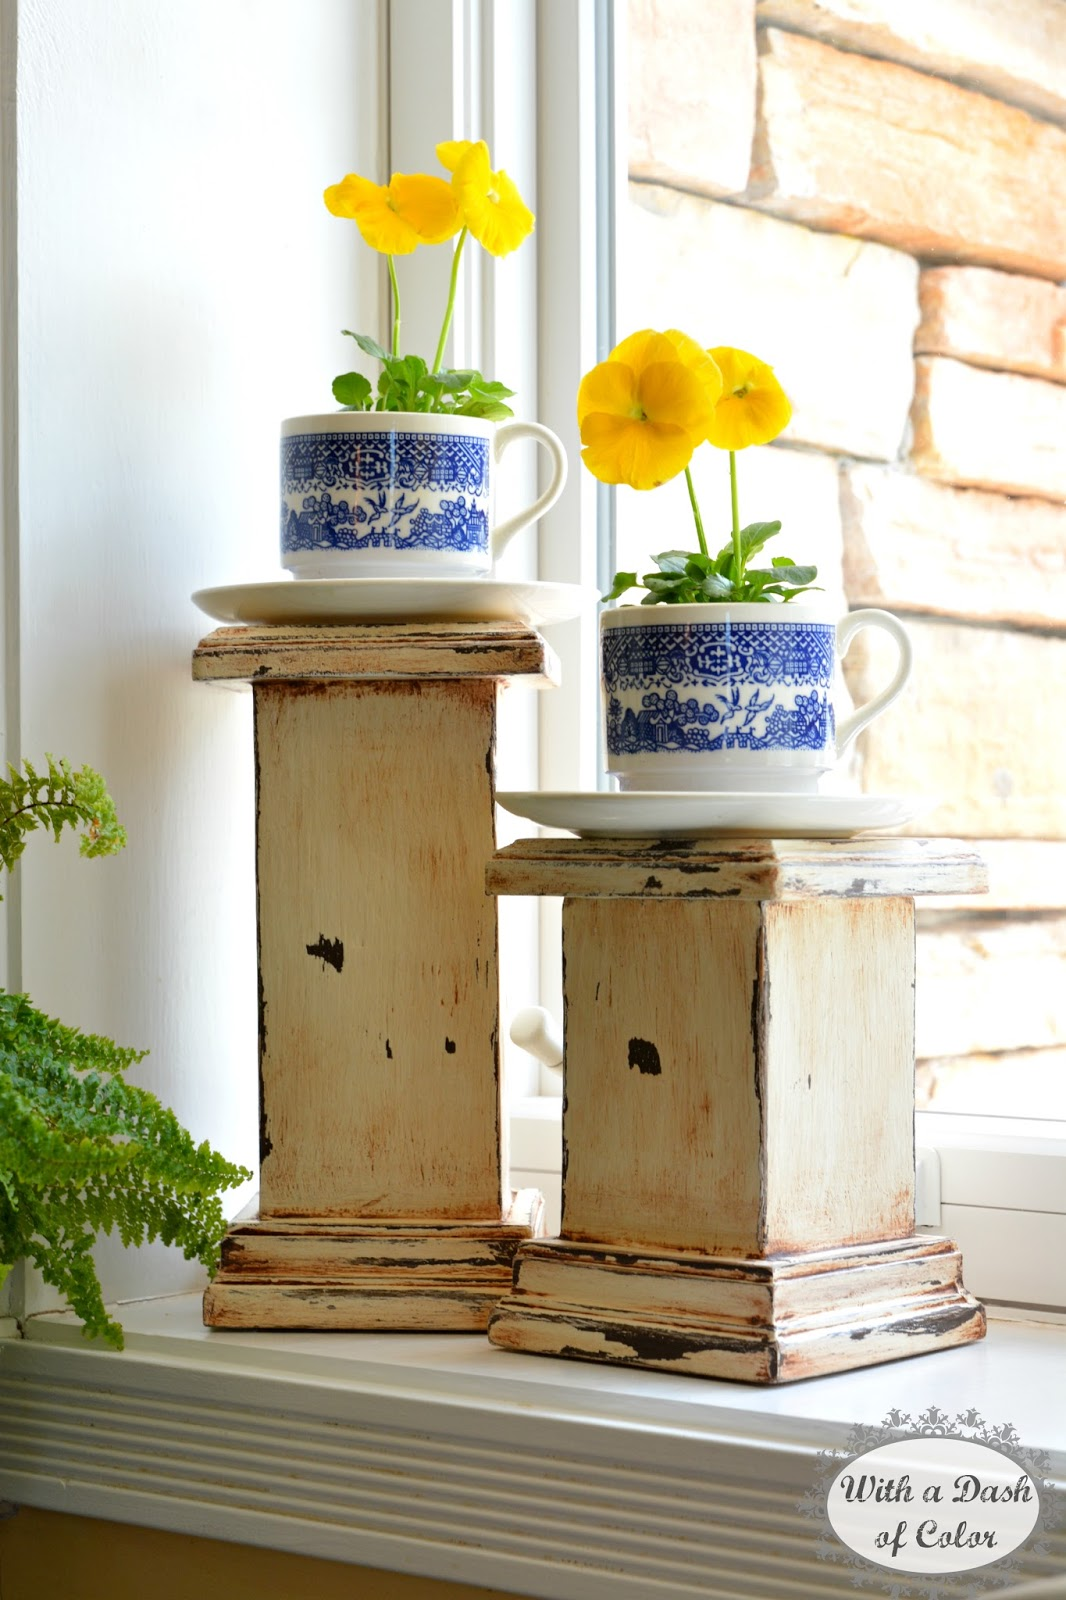 With A Dash Of Color: Decorating The Kitchen Window Sill